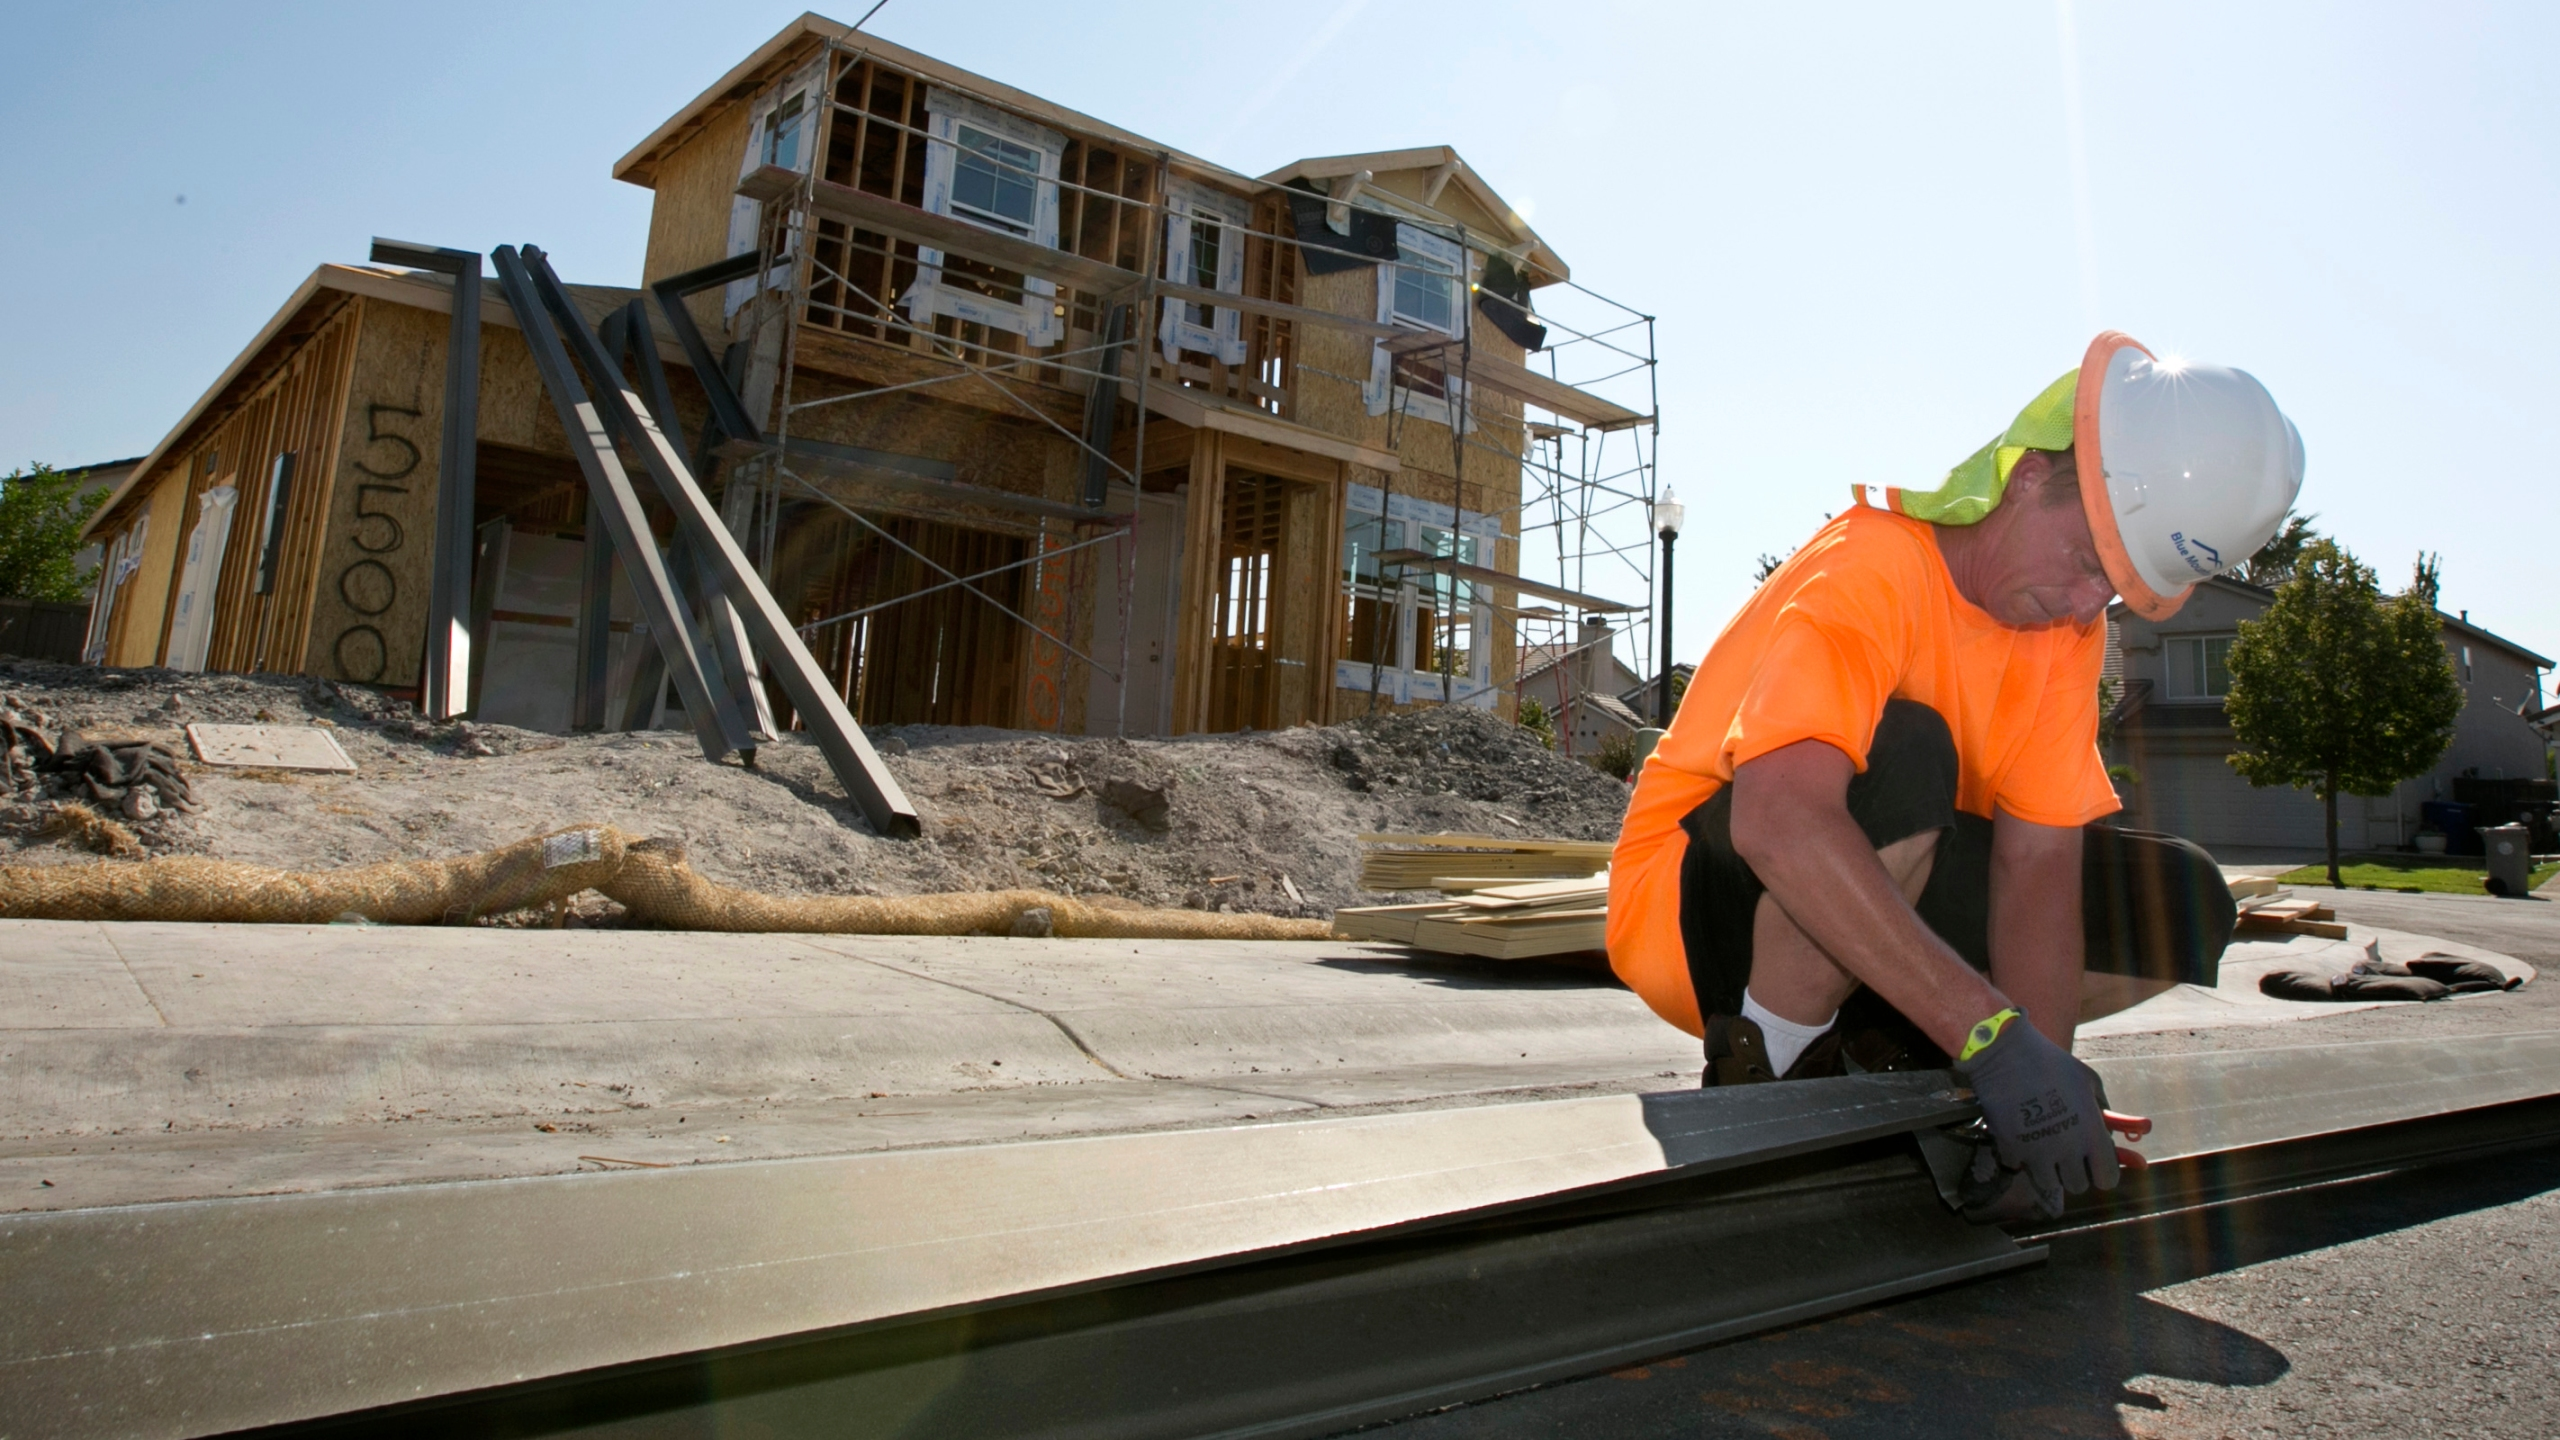 In this photo taken Aug. 16, 2017, sheet metal worker Benjamin Voget prepares to install a gutter on a home under construction in Sacramento. (Rich Pedroncelli / Associated Press)